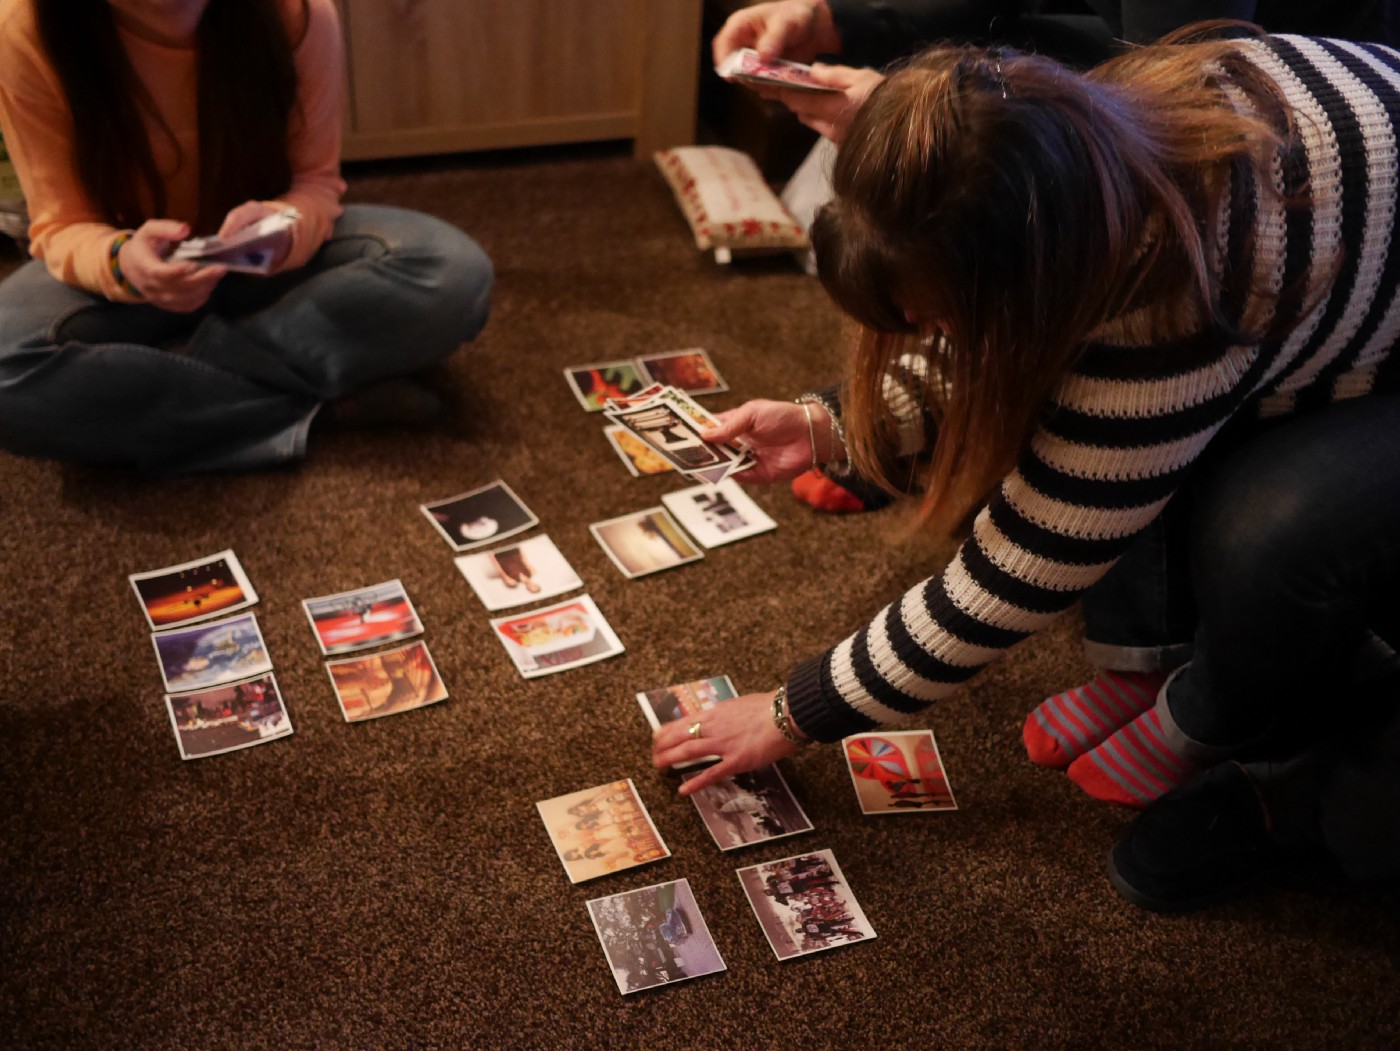 Two people sort photograph cards into groups for a research exercise